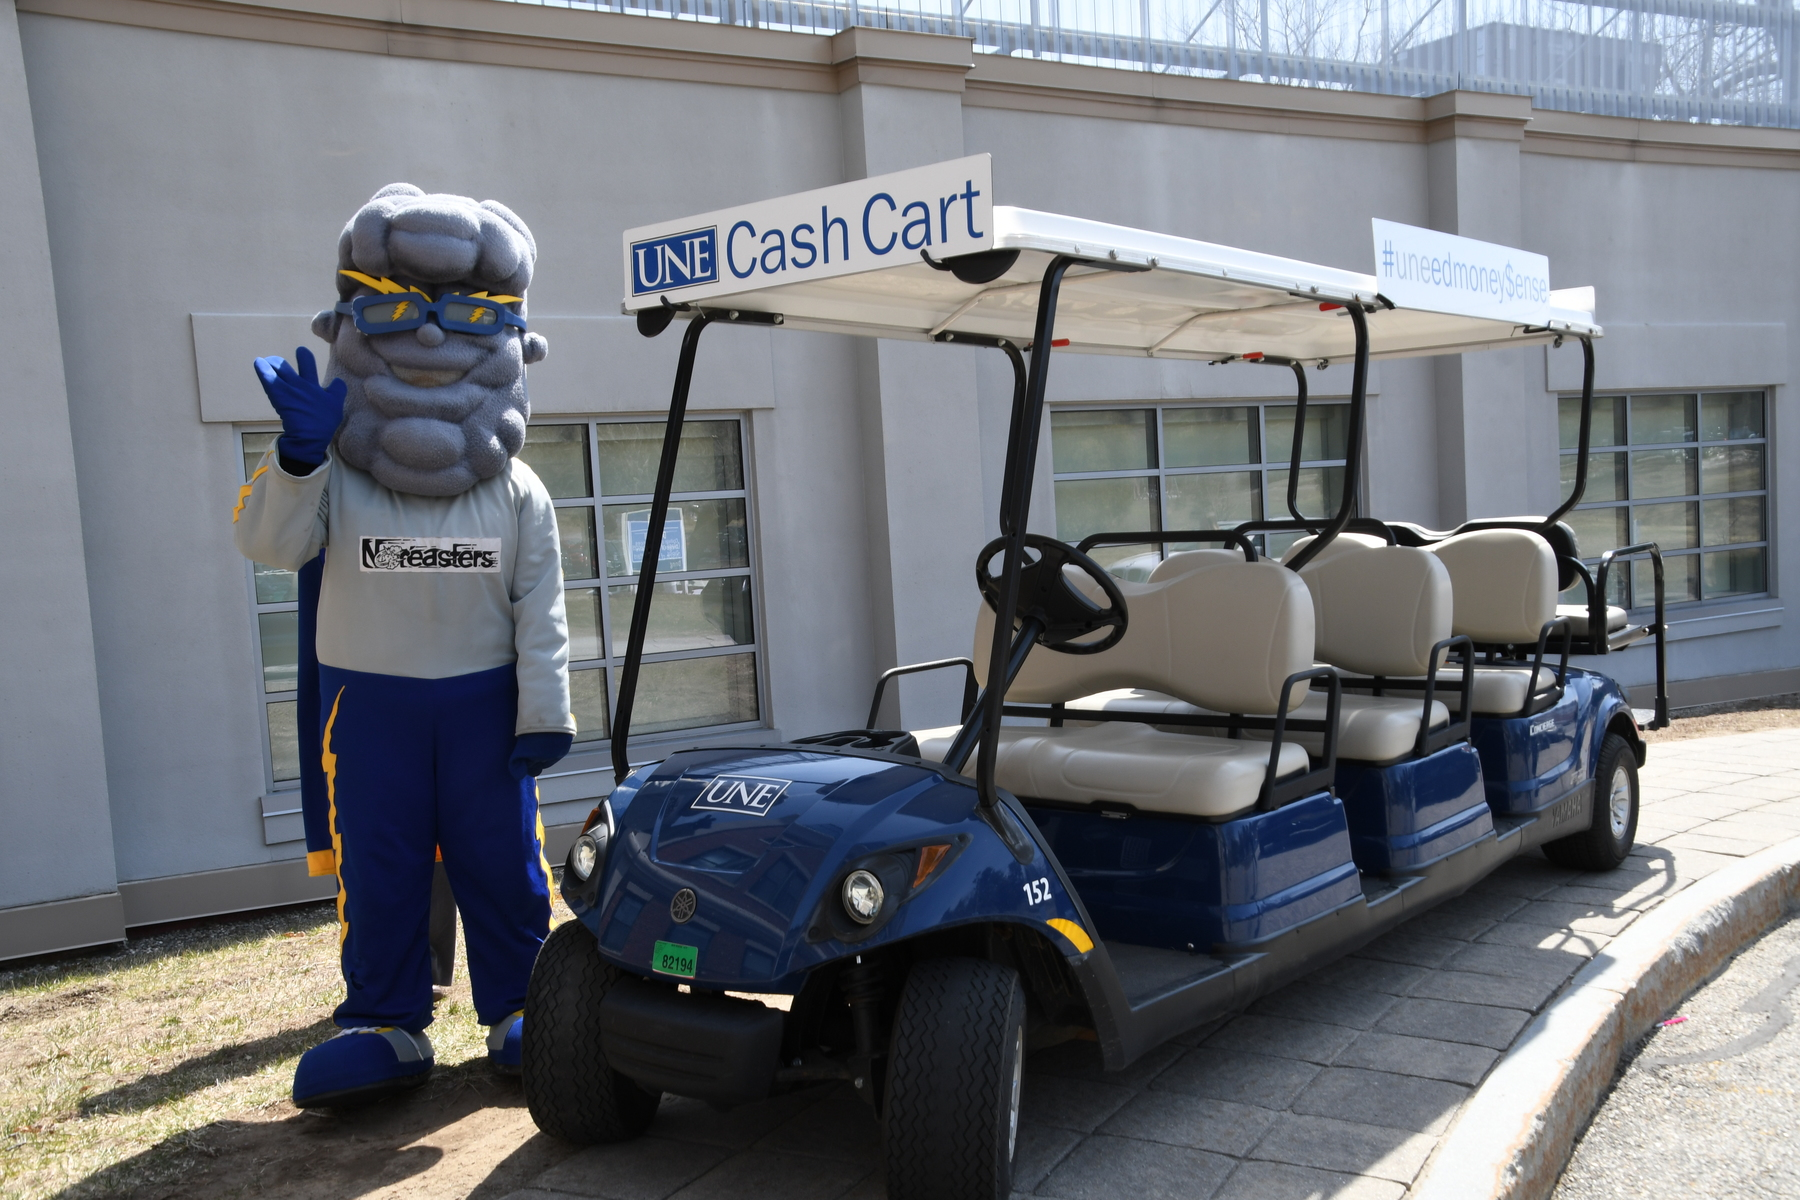 U N E mascot Stormin Norman poses by the cash cart